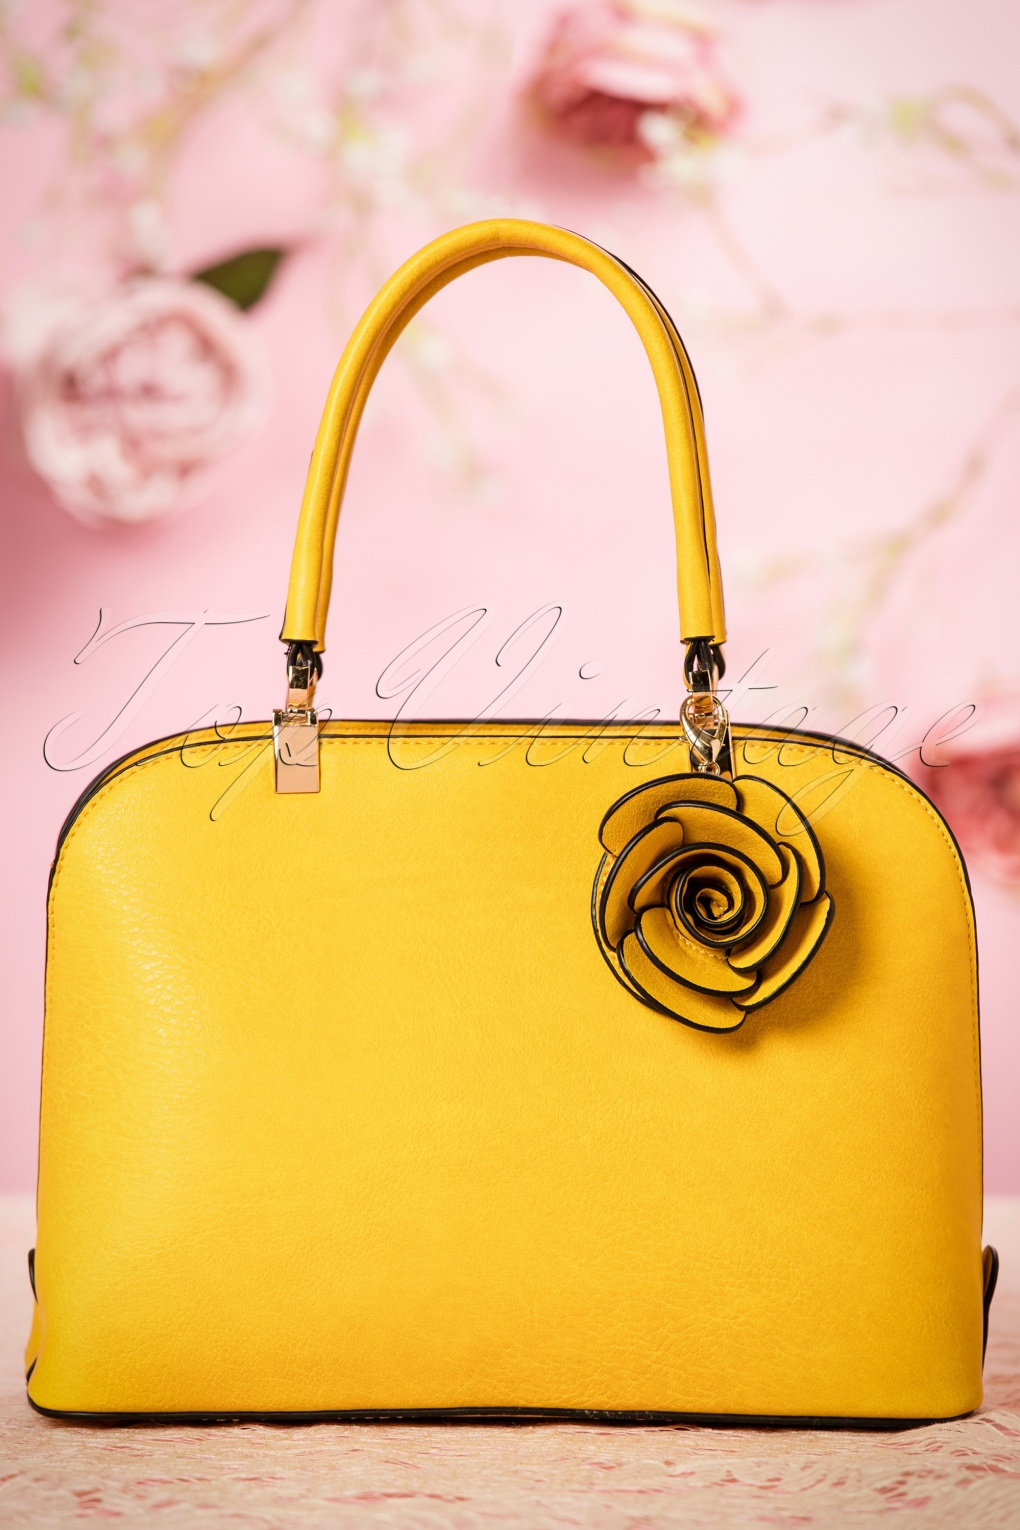 Retro Handbags, Purses, Wallets, Bags 50s Loretta Rose Handbag in Yellow £42.64 AT vintagedancer.com